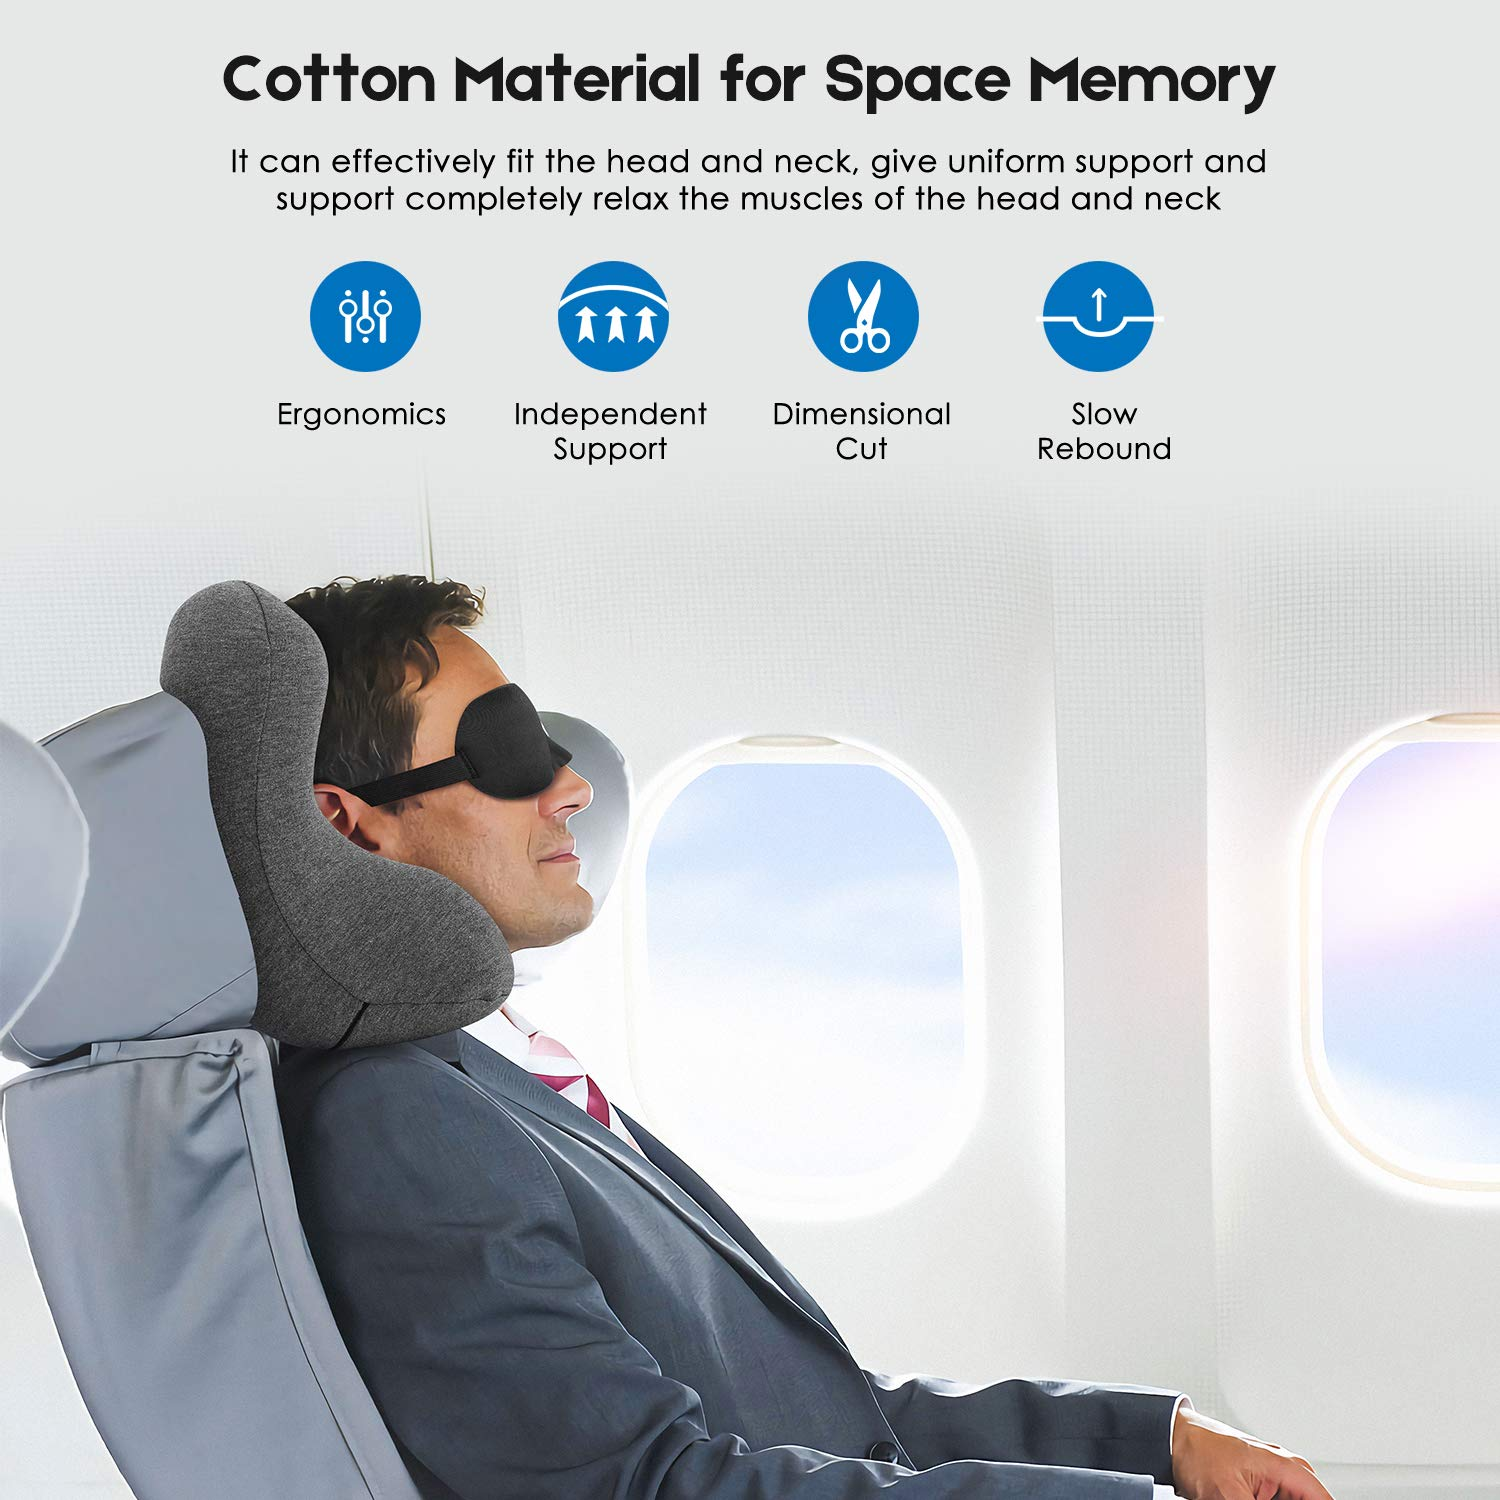 Patented Office Nap Pillow with Accessories VOUO Memory Foam Travel Neck Pillow Grey Head Support for Airplane Train Car Camp Kids